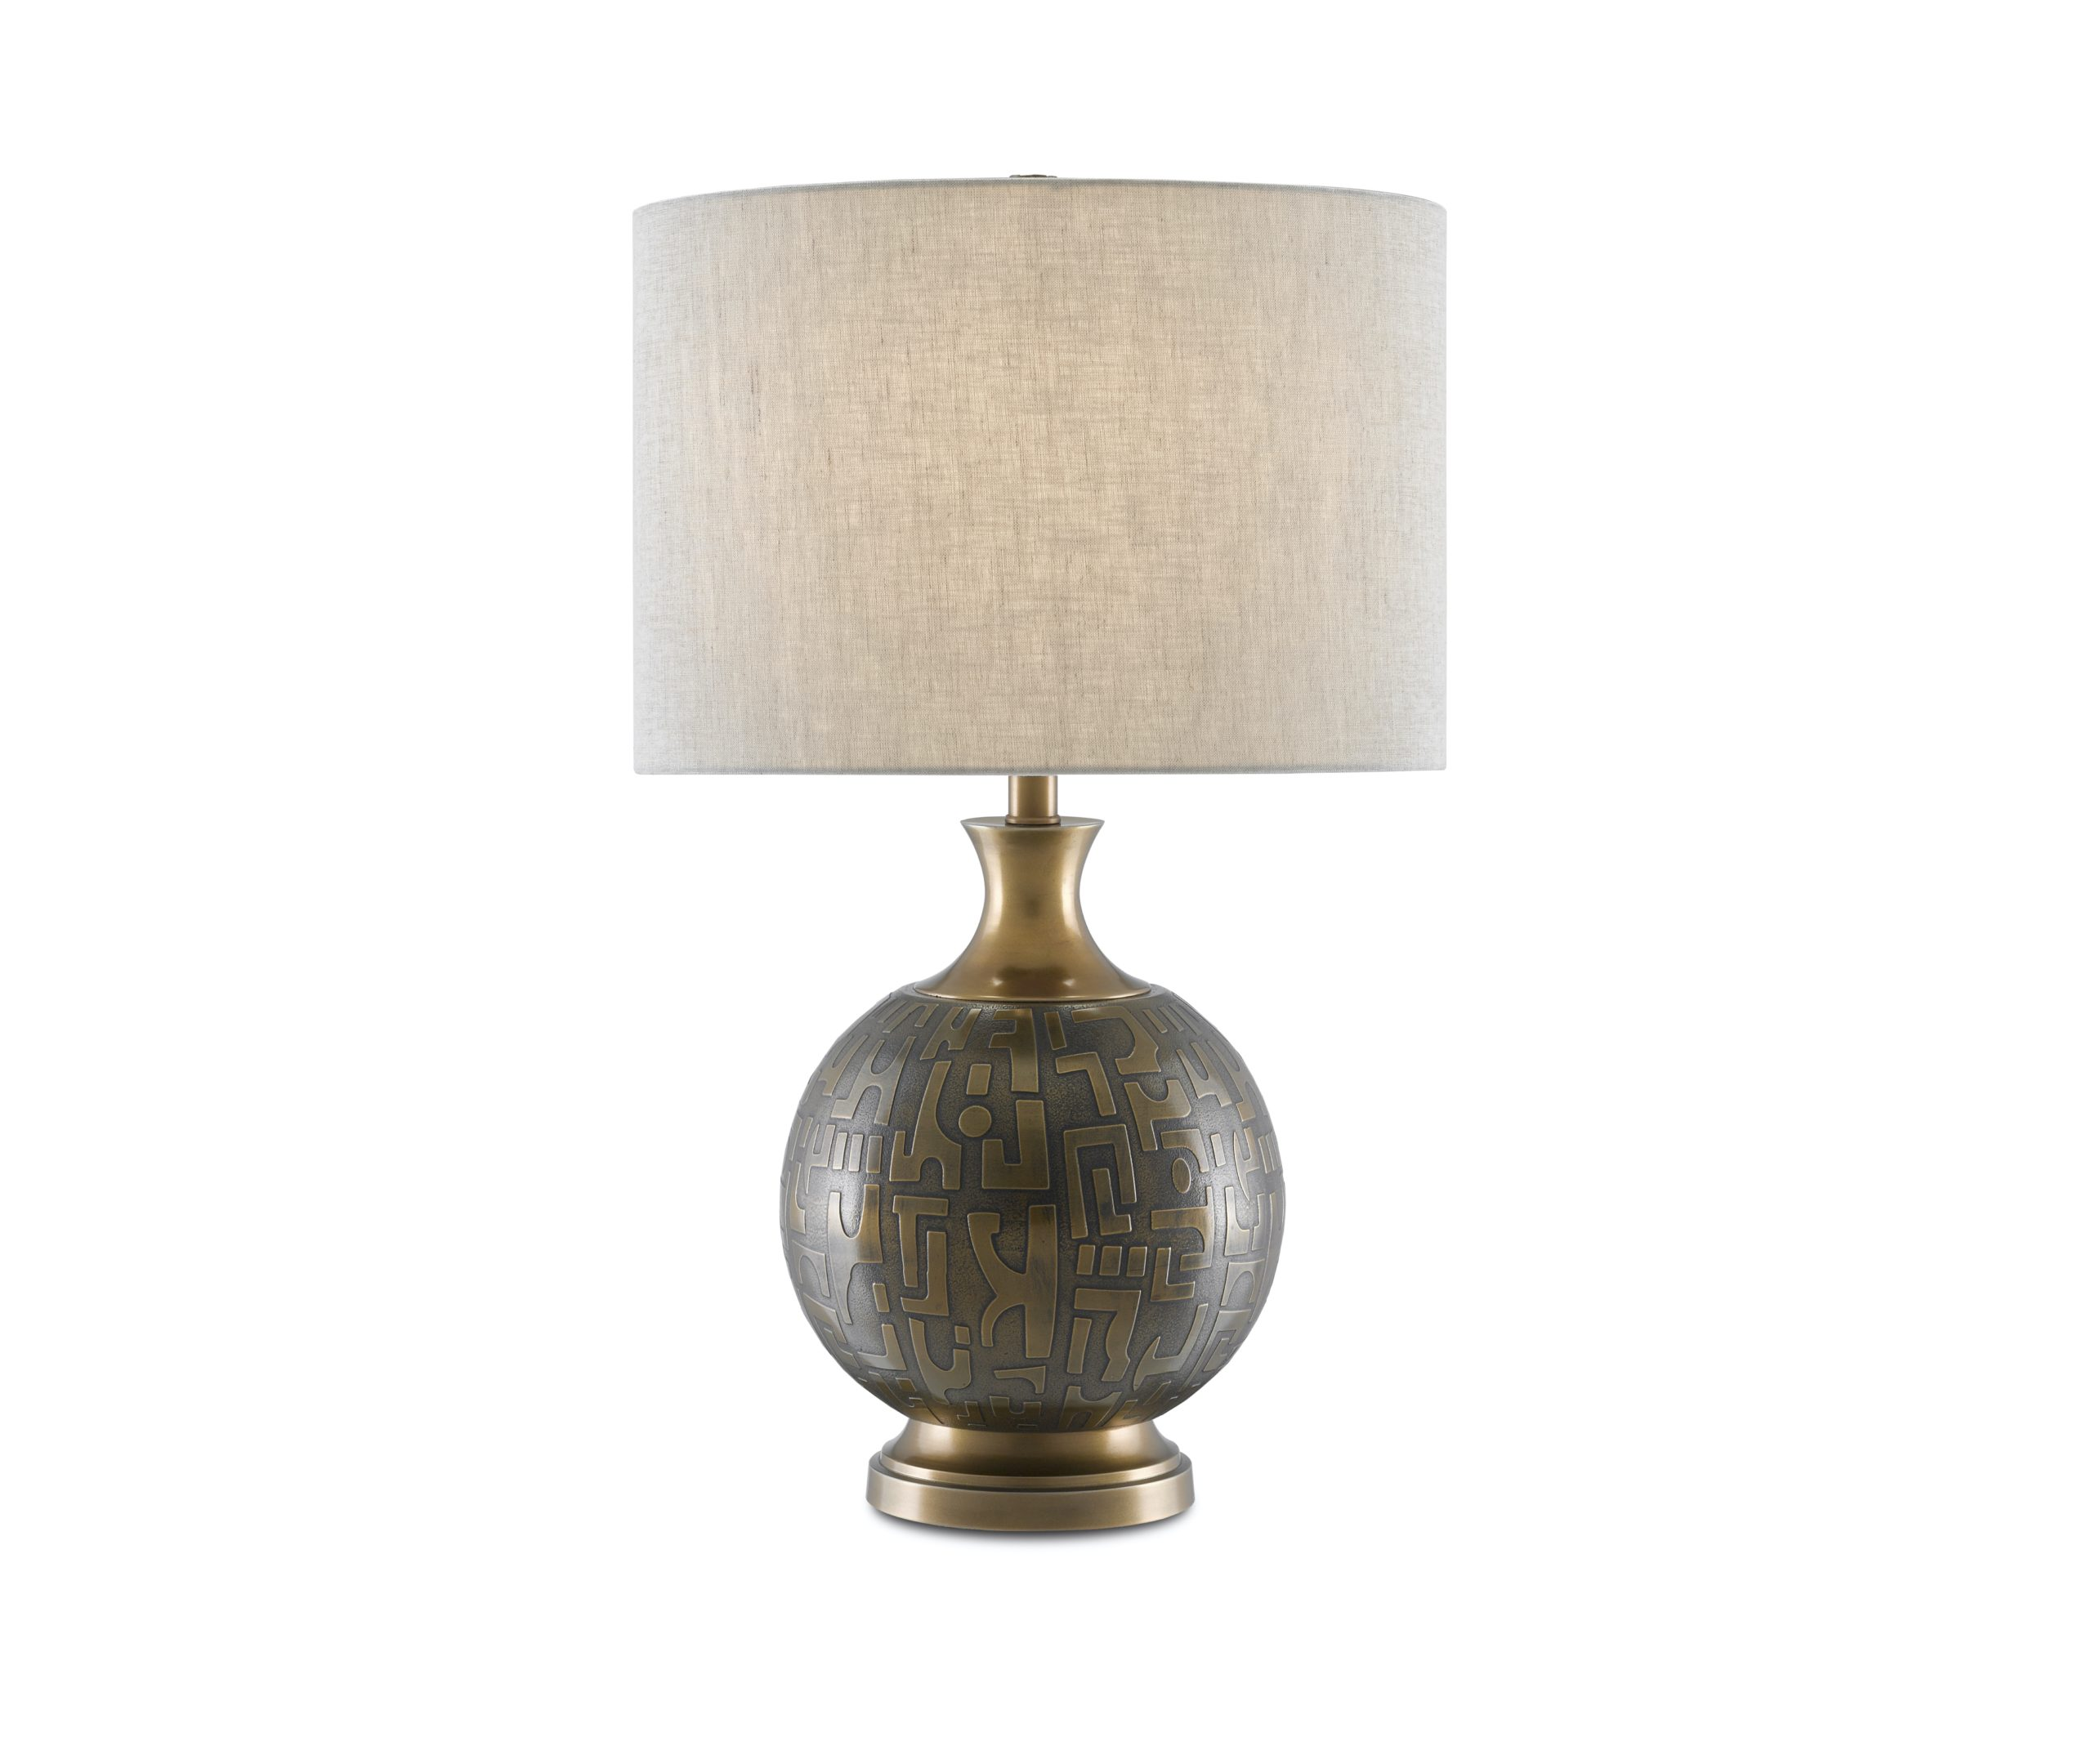 NYDC_WNWN_currey_and_co_products_mizmaze_table_lamp_6000